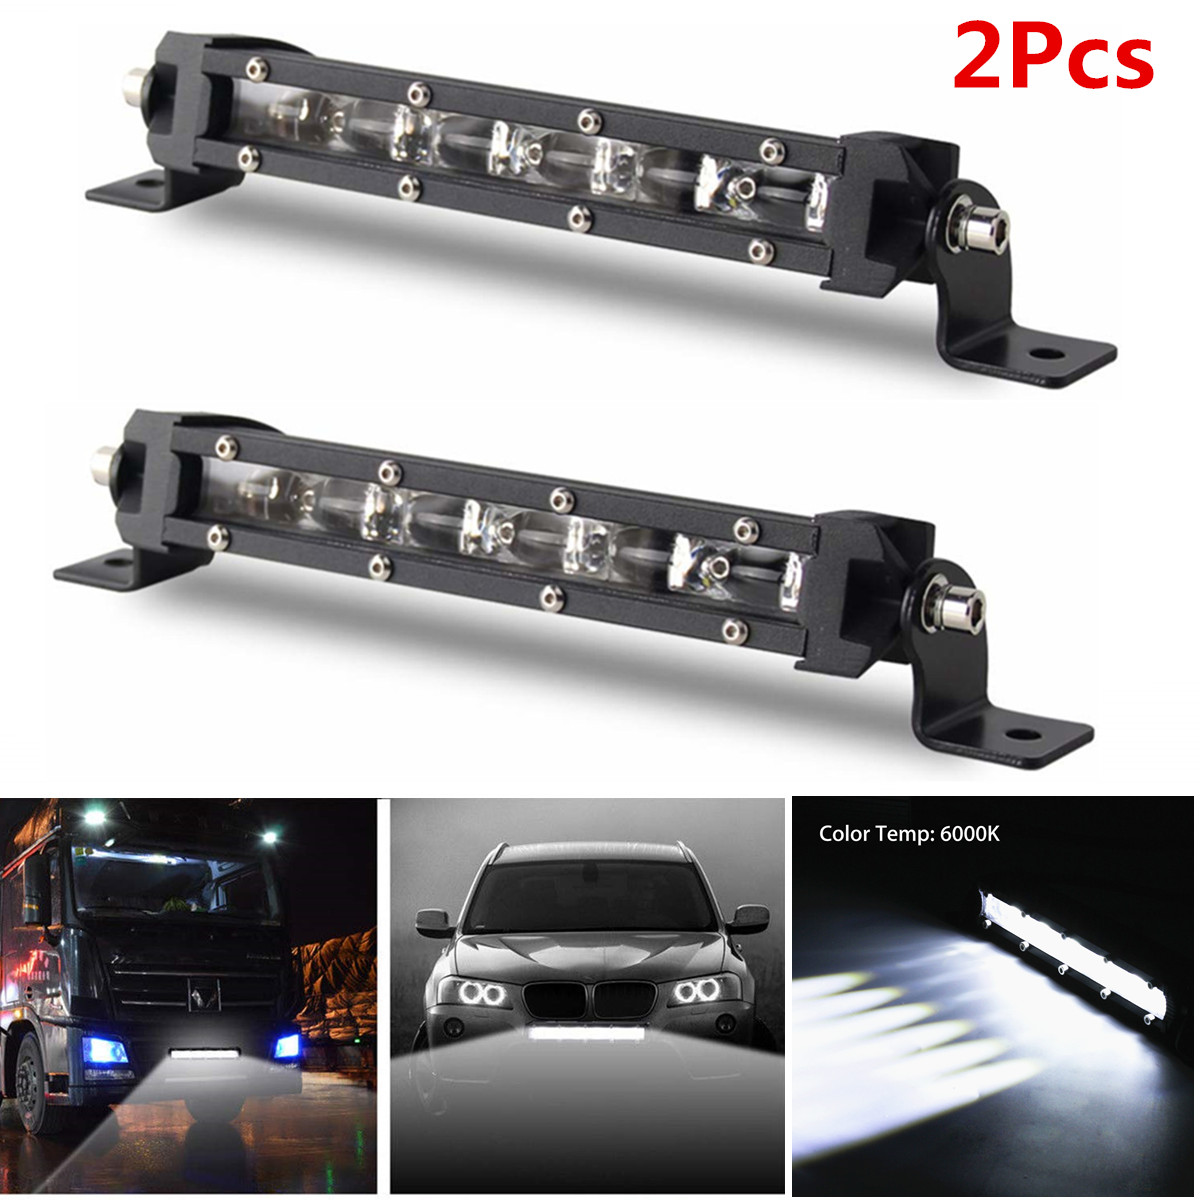 Cabin 1pc Led Light Bar 8inch 30W Single Row Driving Light LEDs 6D Lamp Cup Fog lights for Car,off road Boat SUV Truck Atv